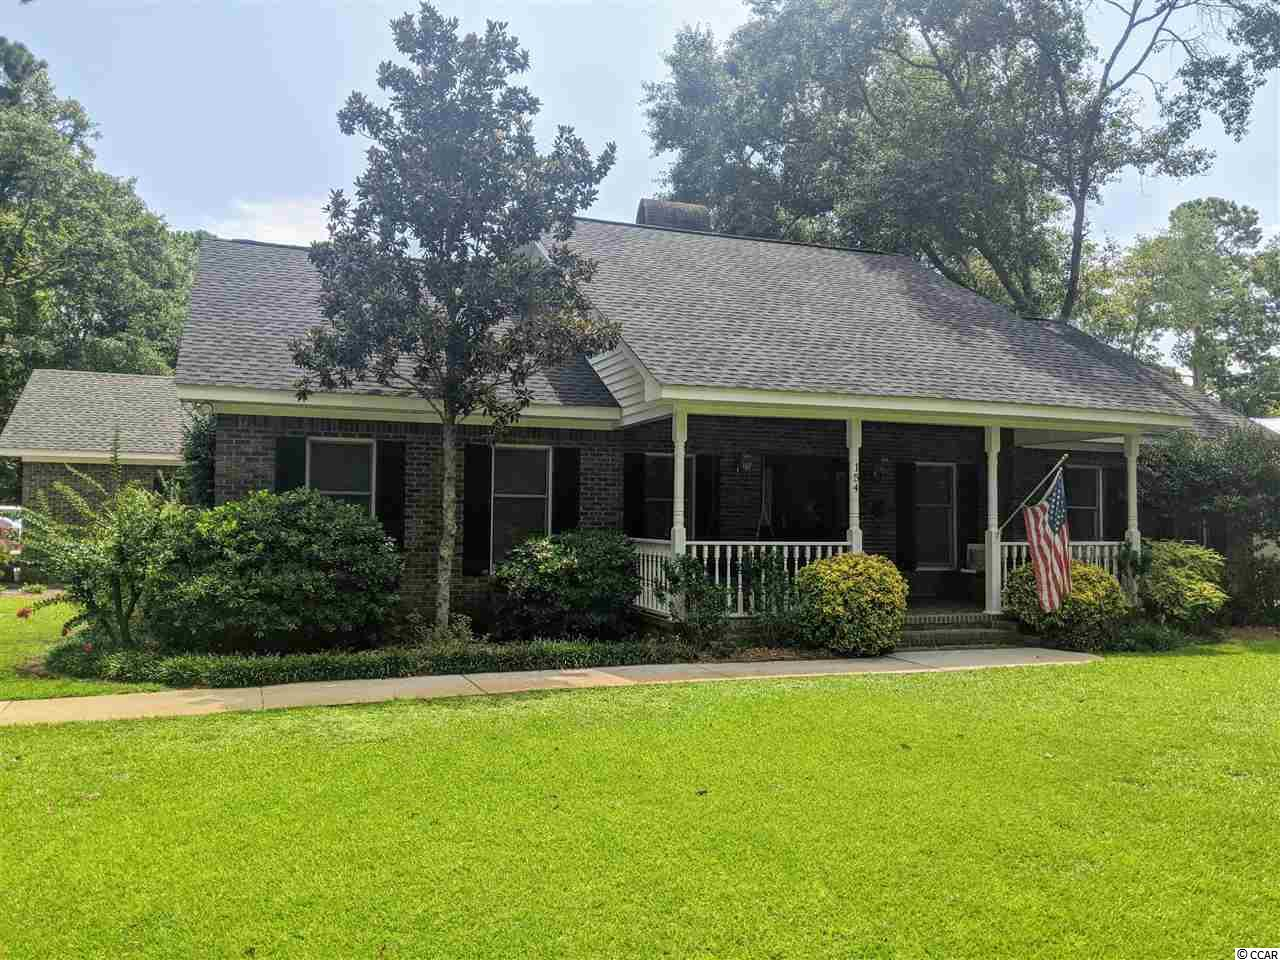 This is a truly amazing all brick home located in a voluntary HOA community in Pawleys Island SC. Take a short golf cart ride to locals favorite South Litchfield beach or walk to the local gym. This home is perfectly located in the heart of Pawleys Island. 3 bedroom 3 bath with detached garage on nearly 1 acre with live oak trees and room to grow. This lovely updated home will not last long.